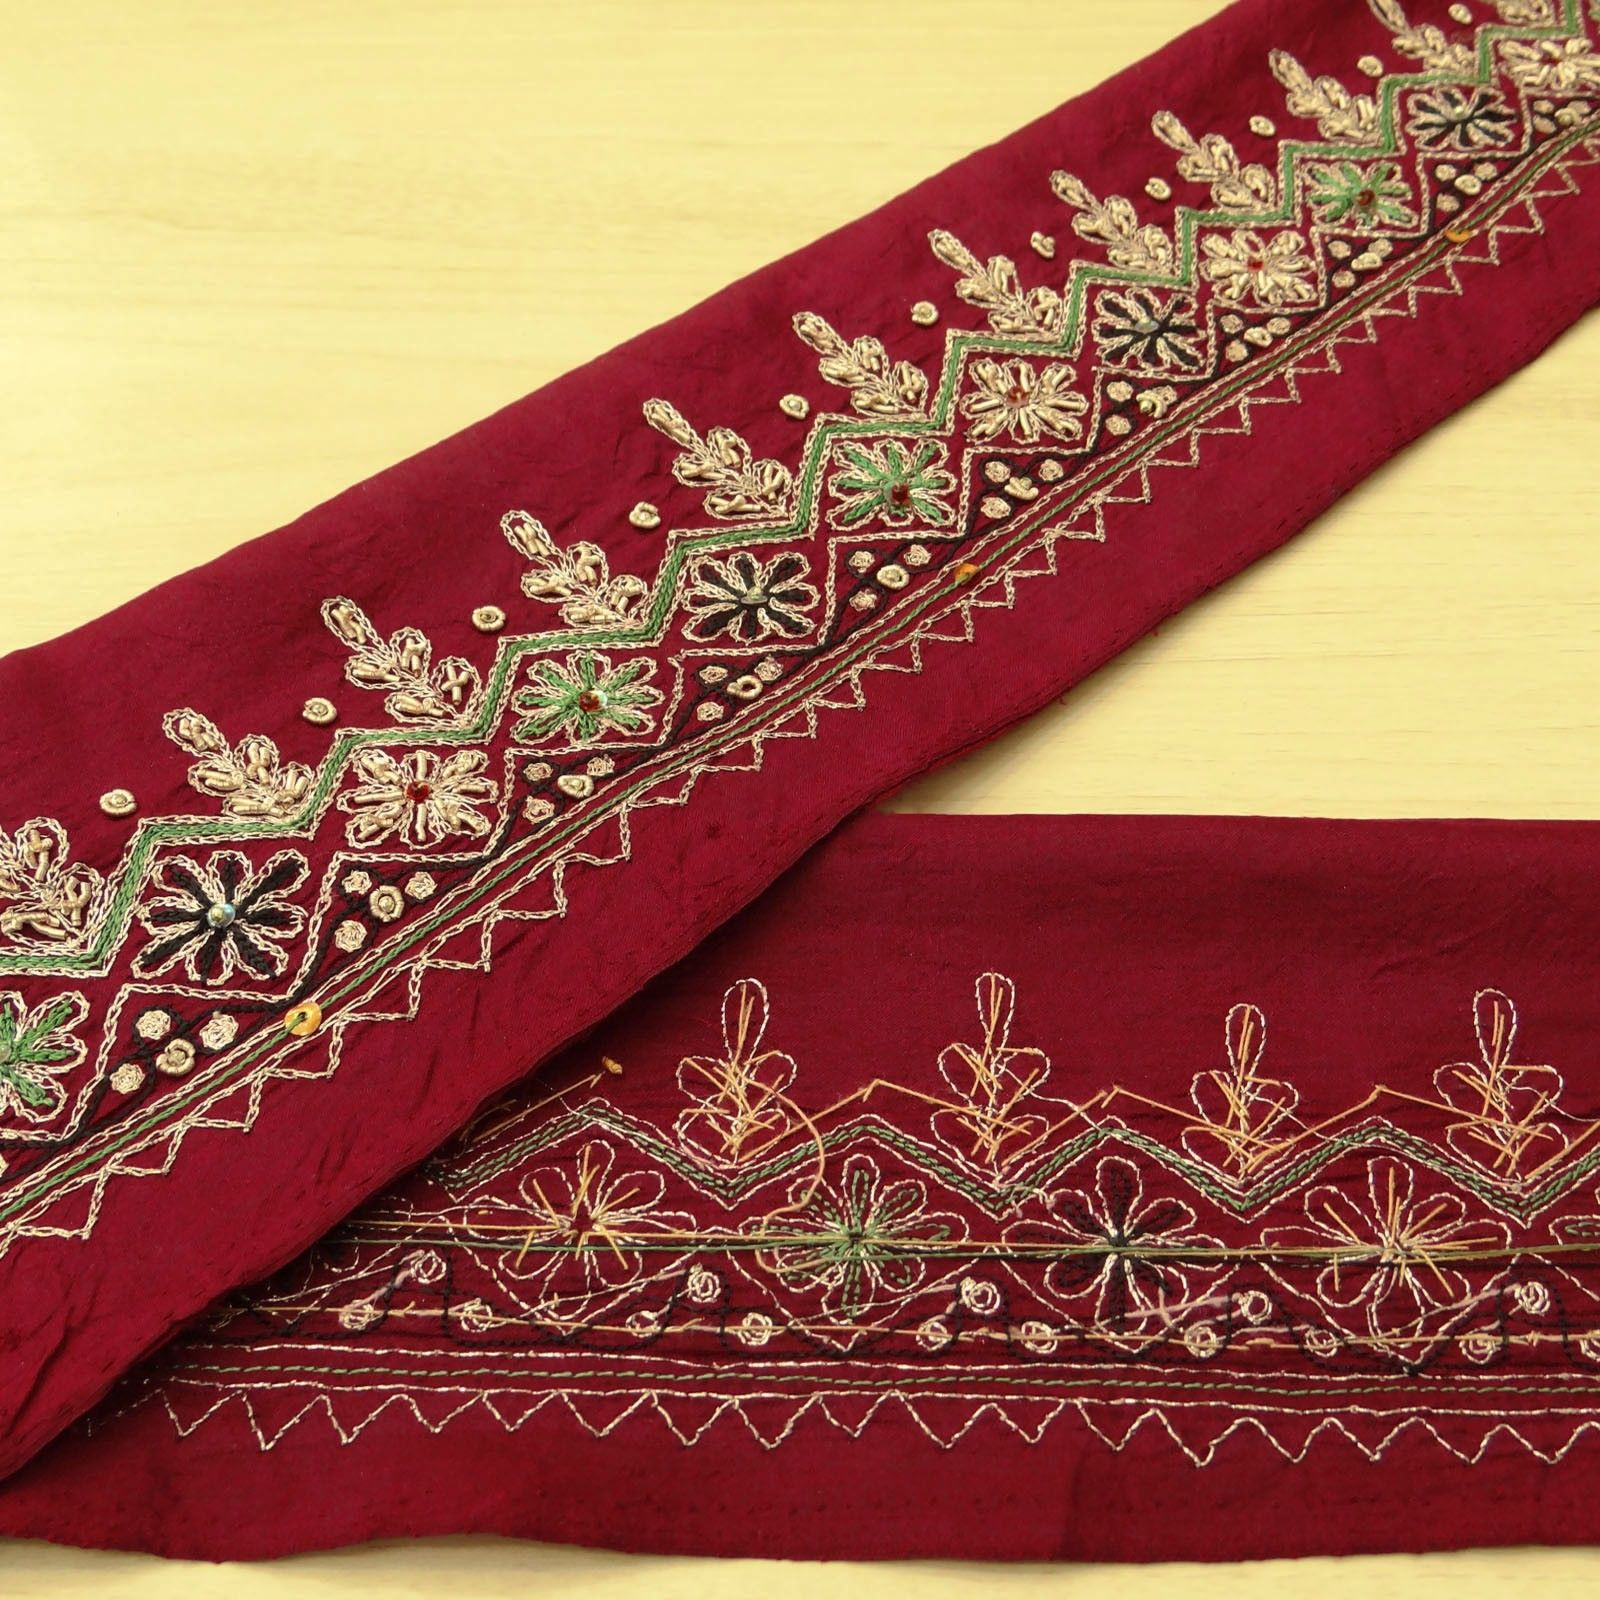 Sewing Just Vintage Sari Border Antique Hand Beaded Indian Trim Sewing Maroon Lace Easy To Use